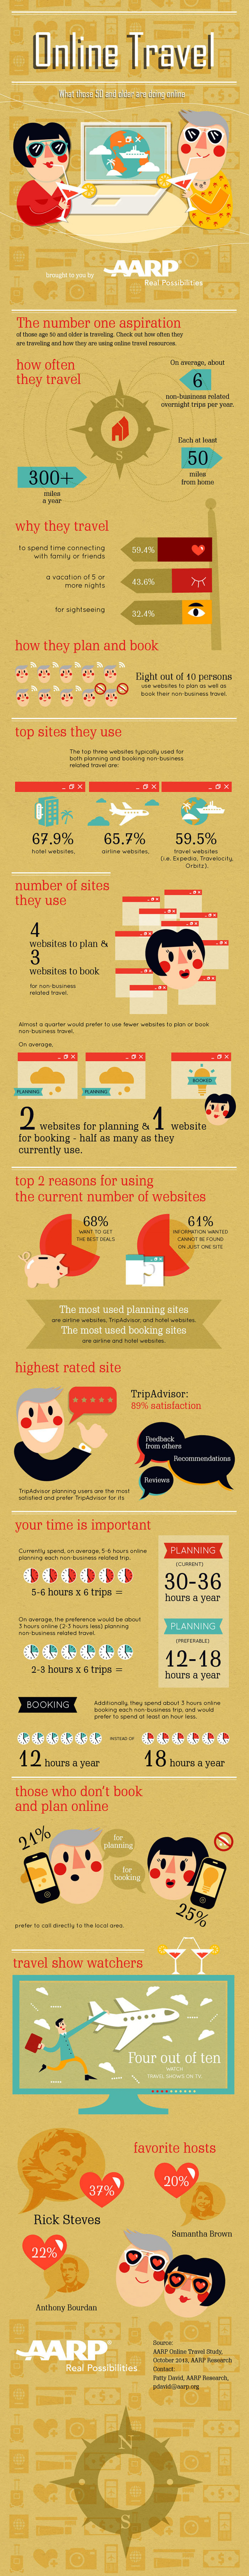 Online Travel Infographic